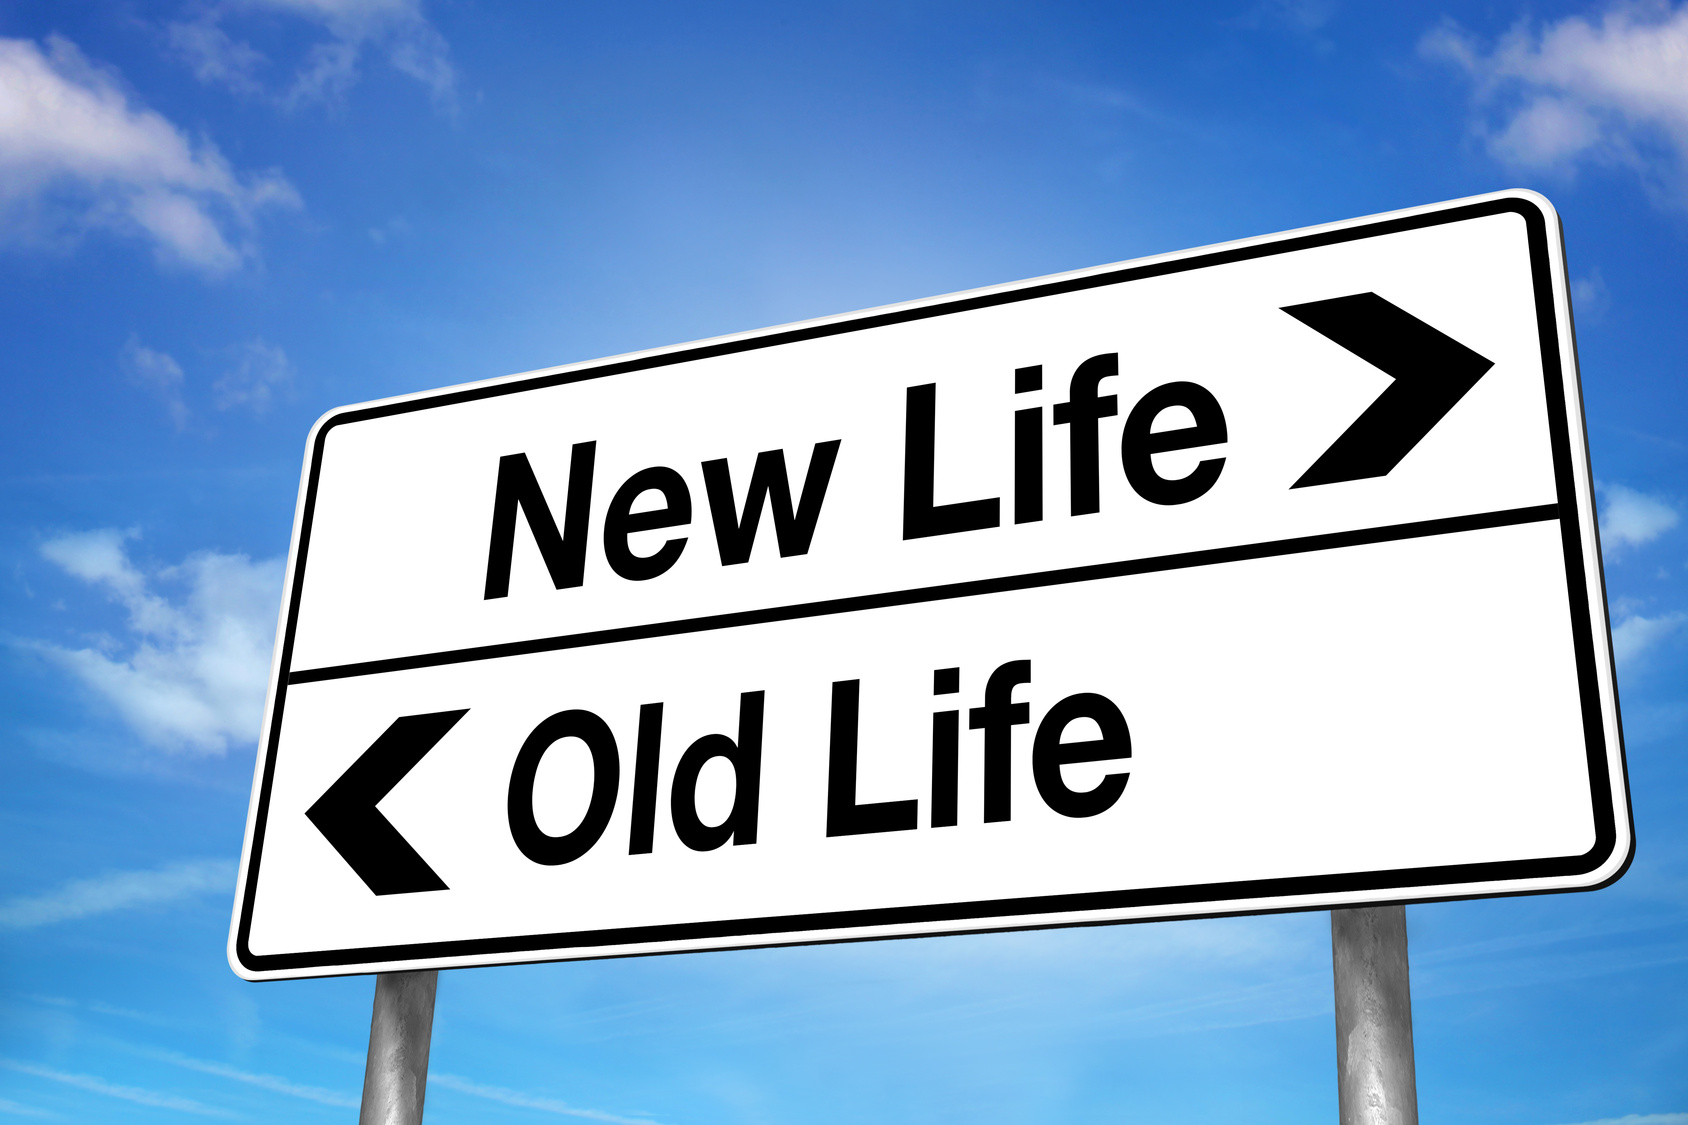 New Life, Old Life Sign 767.91 Kb